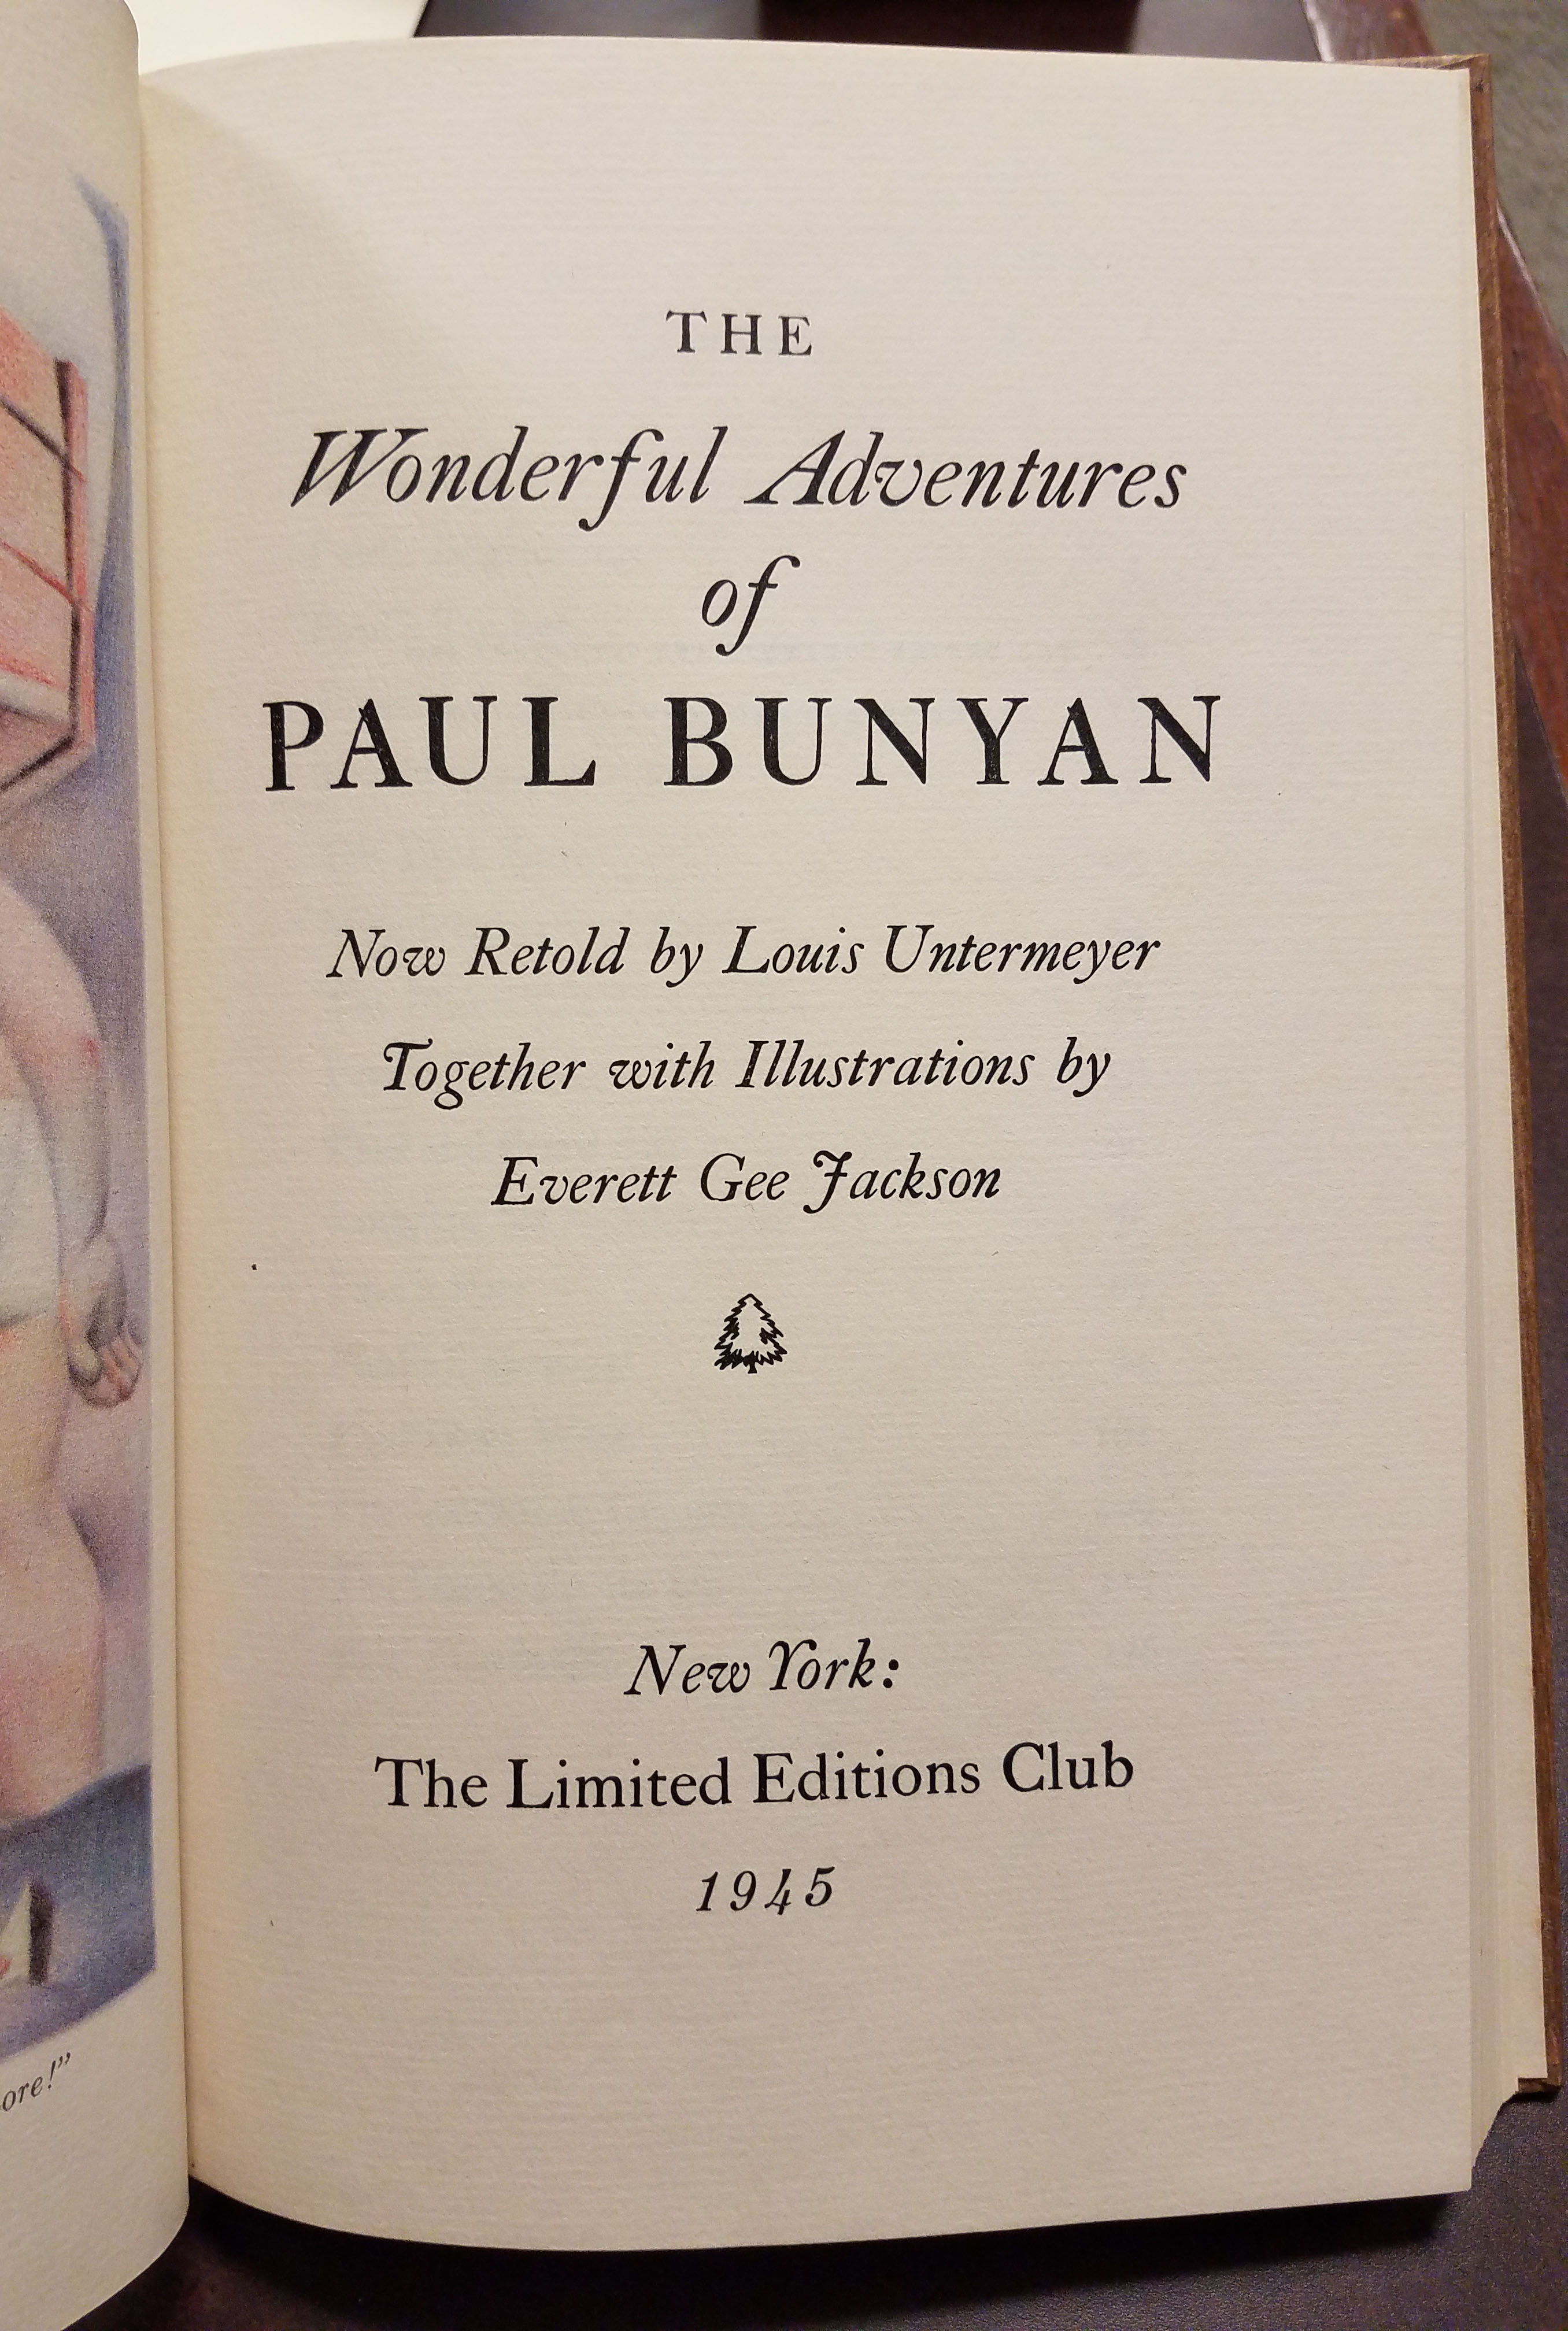 title page: The Wonderful Adventures of Paul Bunyan. Now retold by Louis Untermeyer together with illustrations by Everett Gee Jackson. New York: The Limited Editions Club, 1945